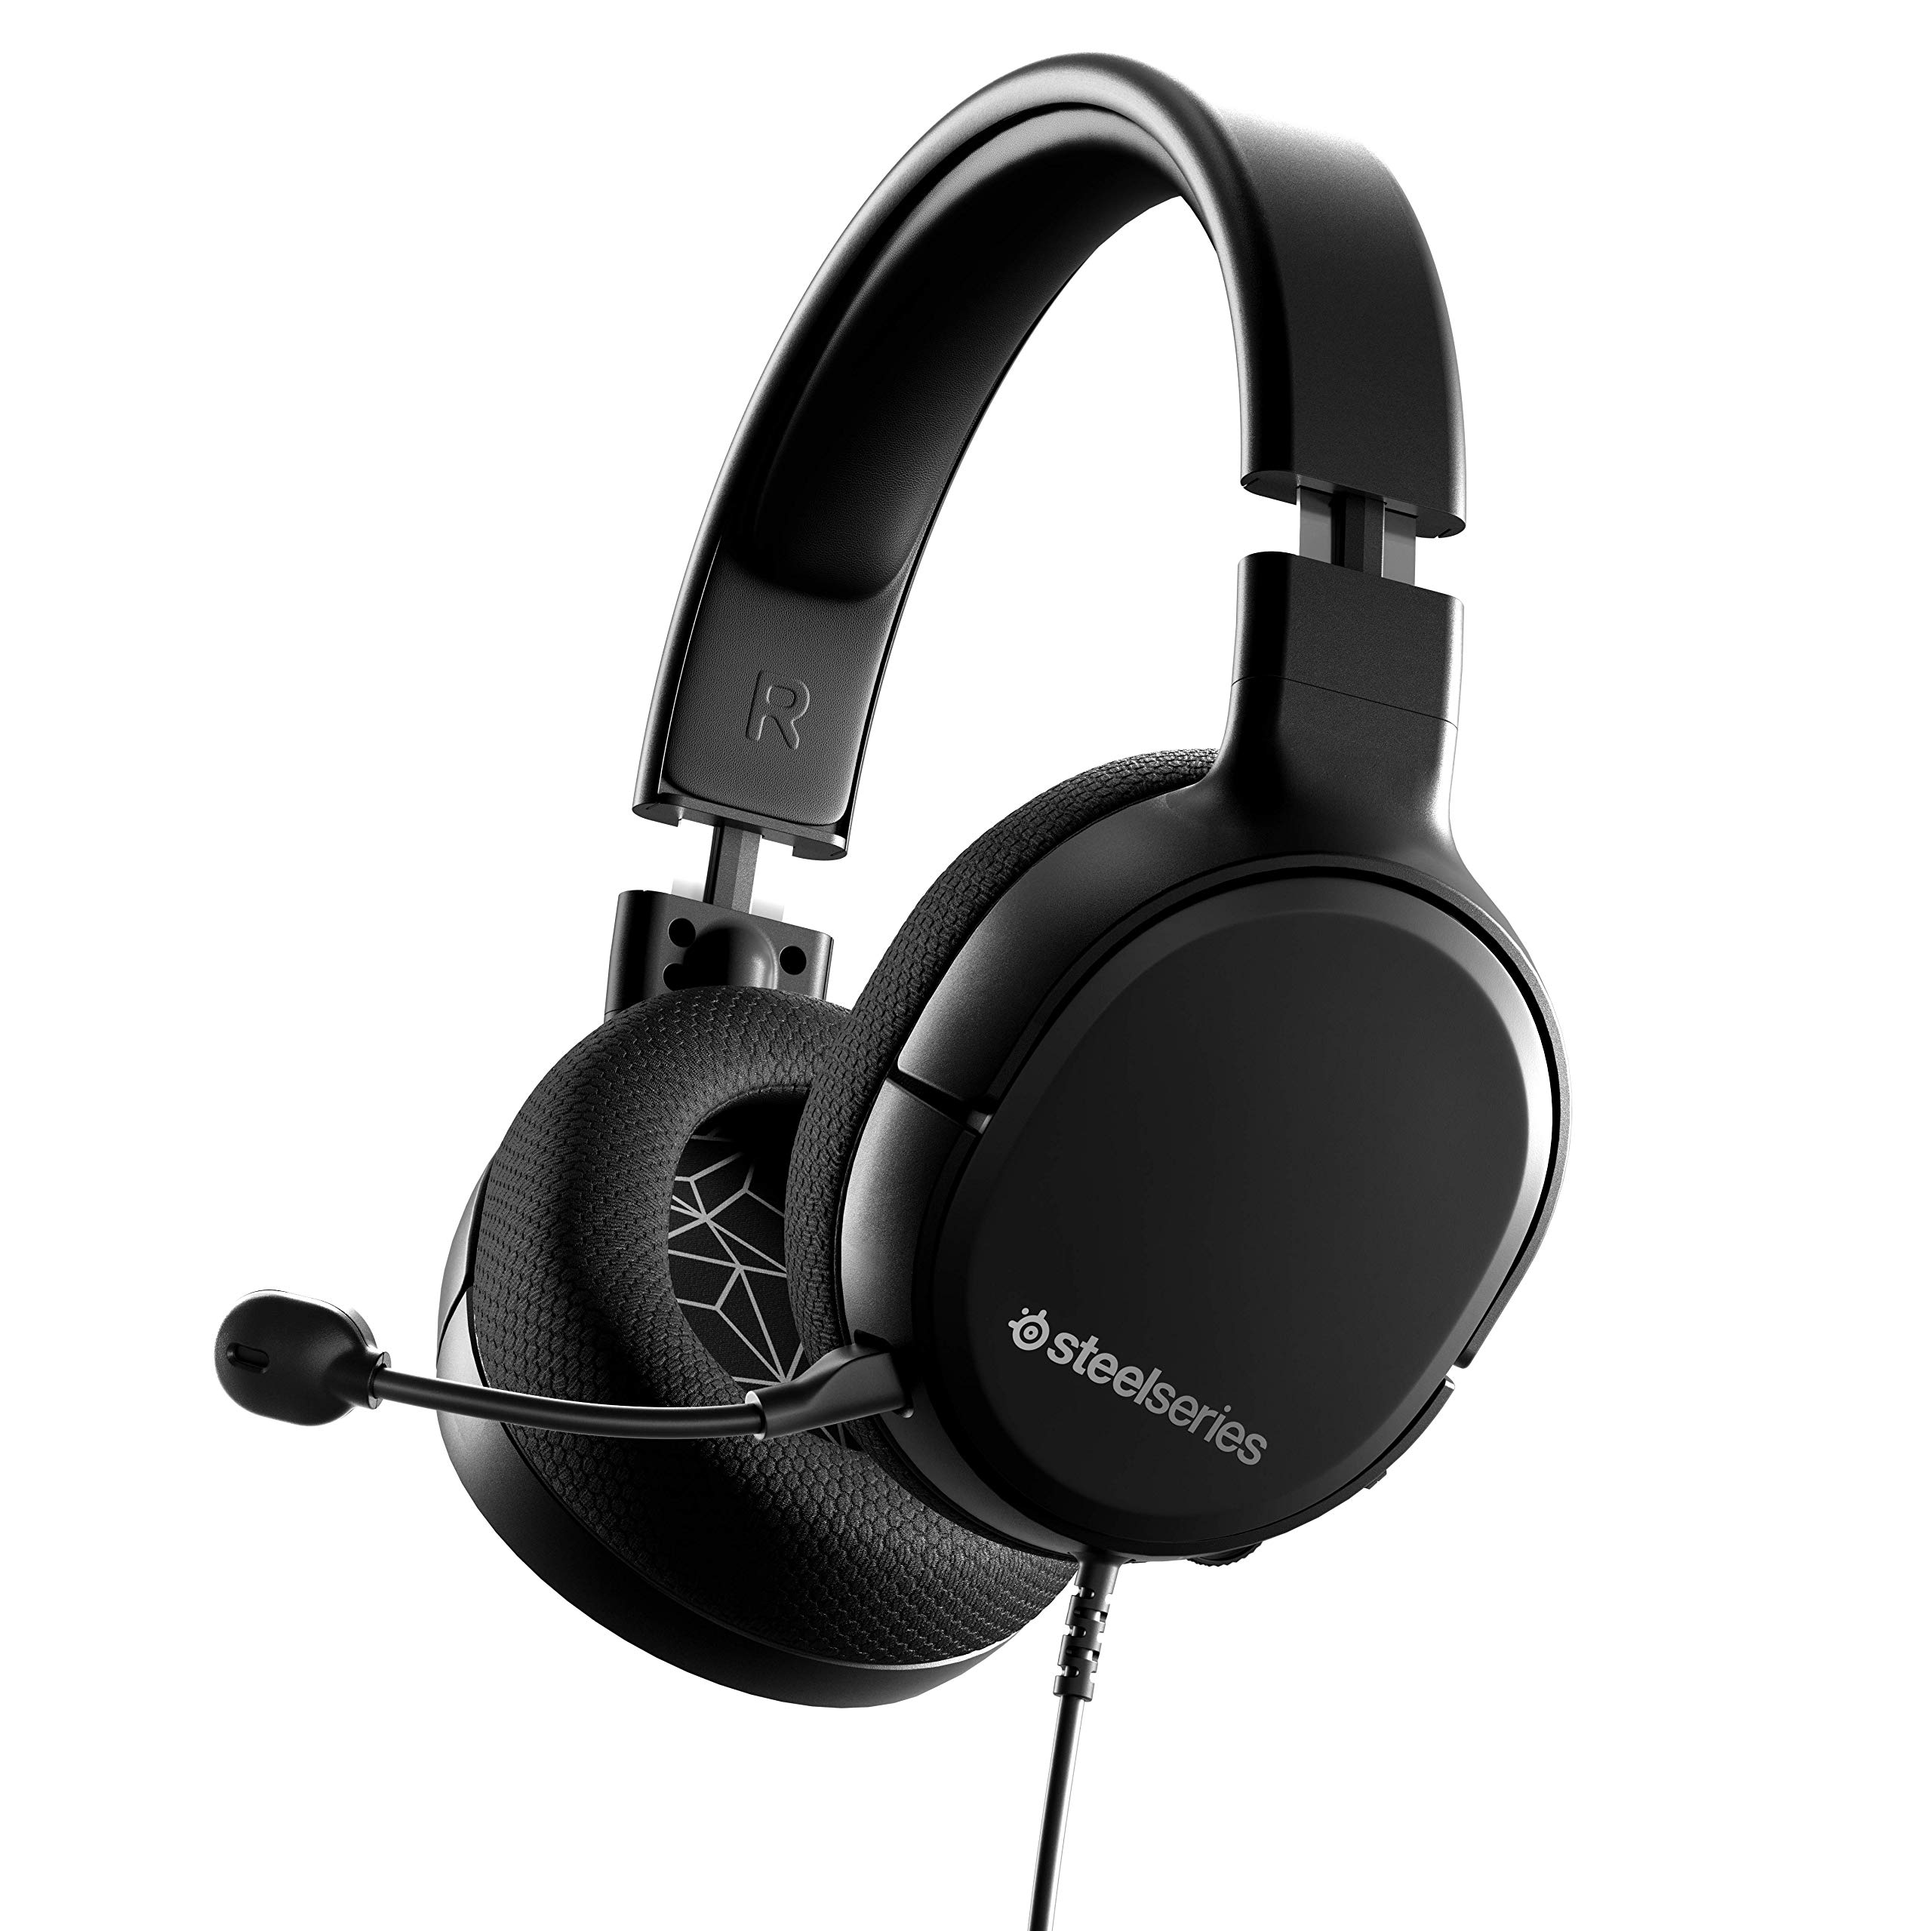 SteelSeries Arctis Wired Gaming Headset